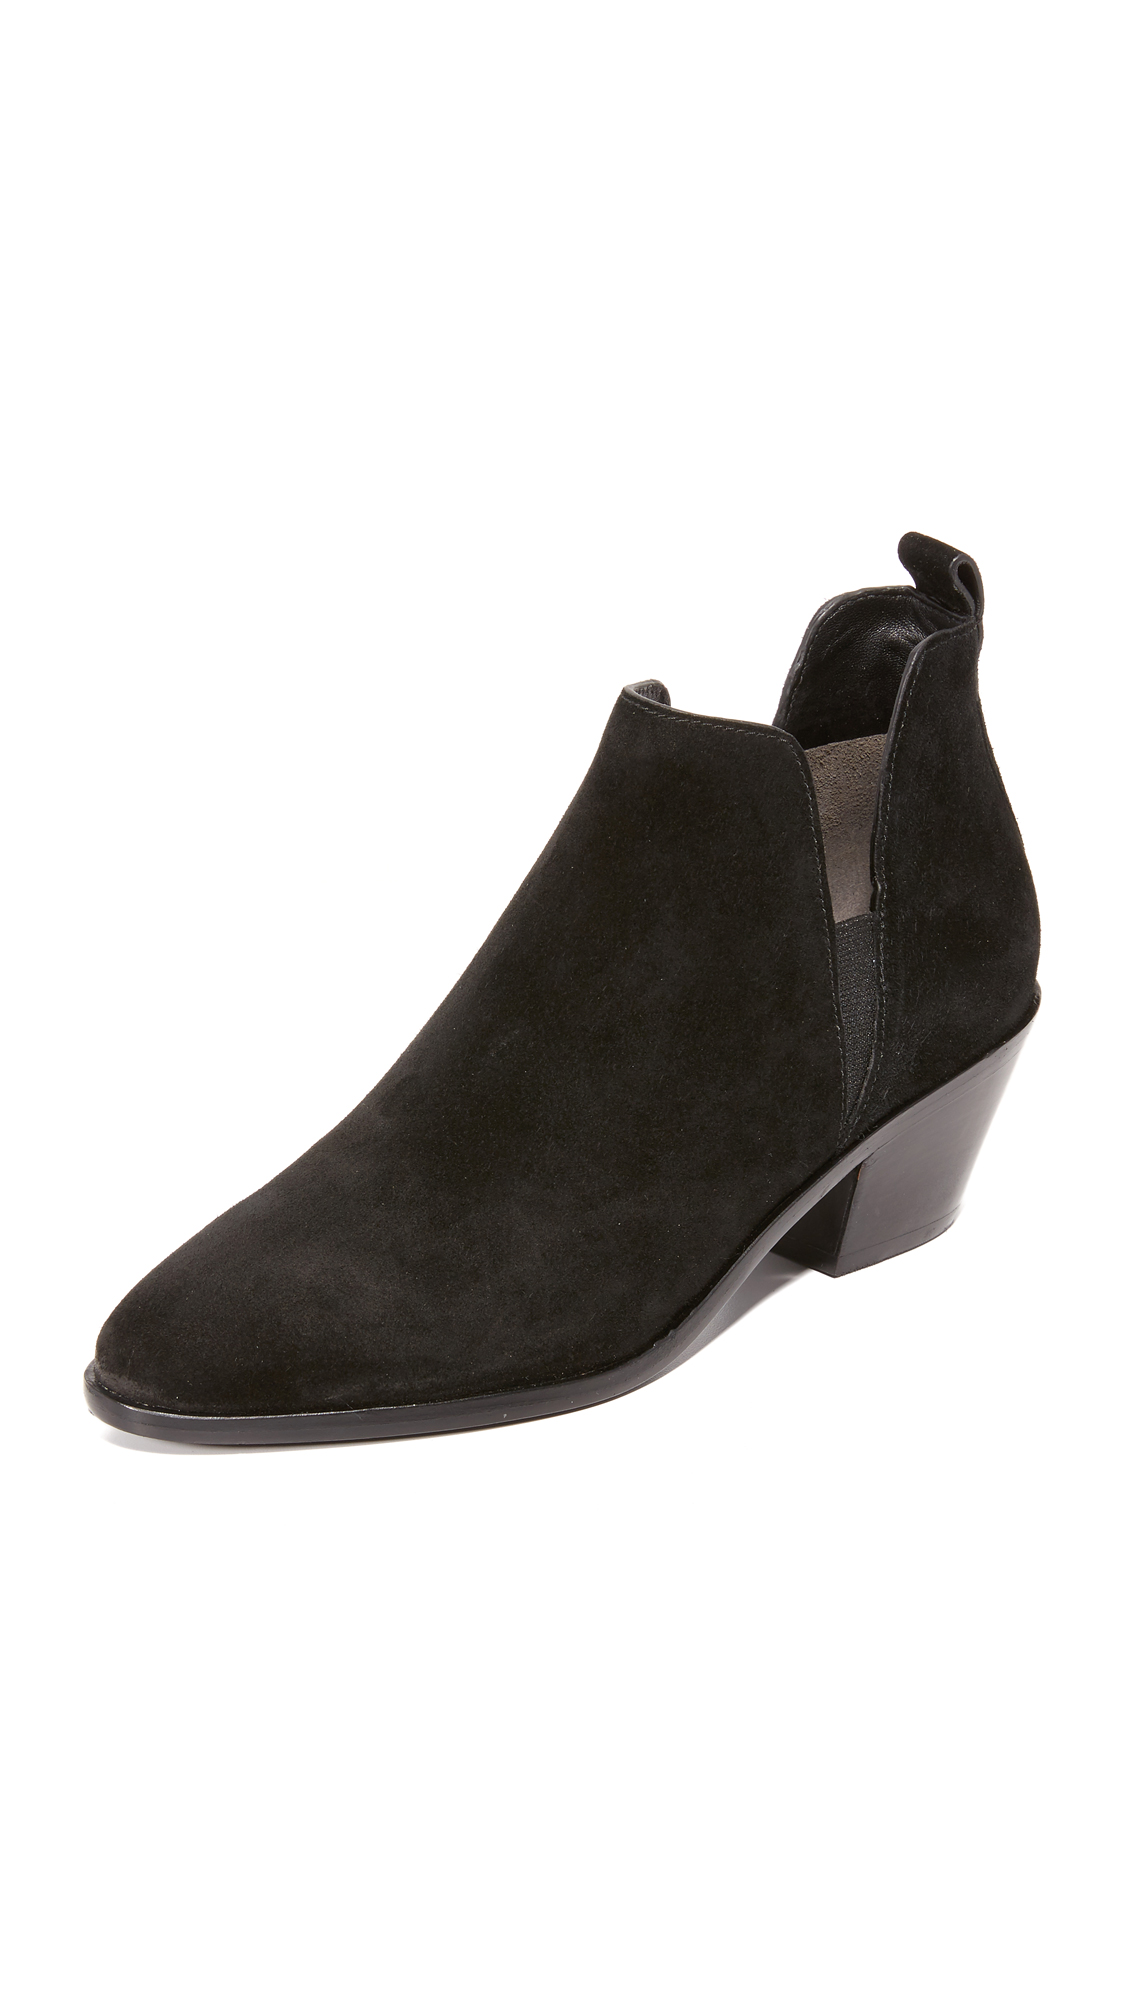 Sigerson Morrison Belin Booties - Black